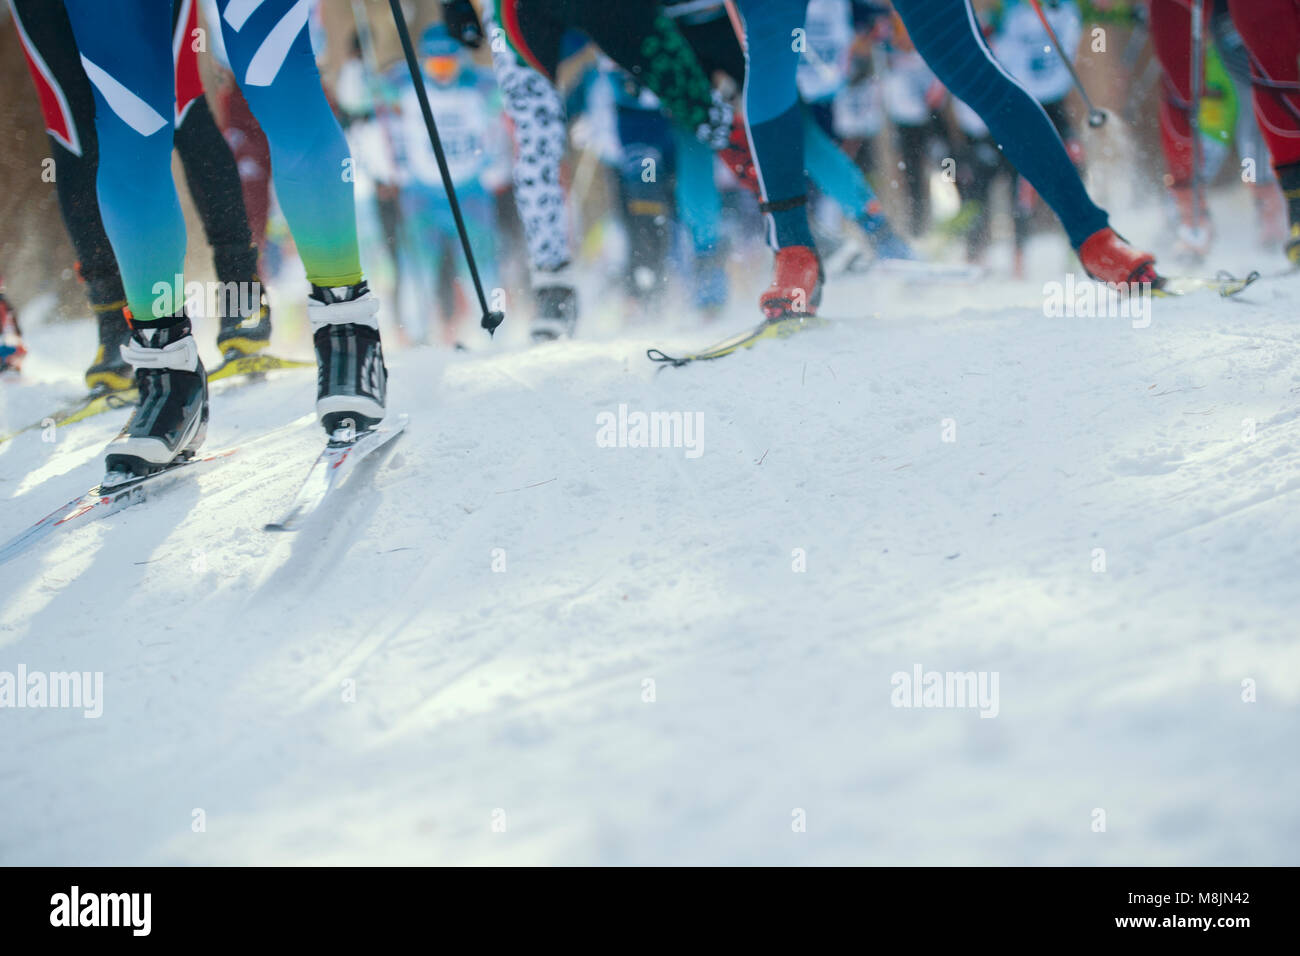 Ski marathon - de-focused view of many legs of sportsmen running on snow - Stock Image